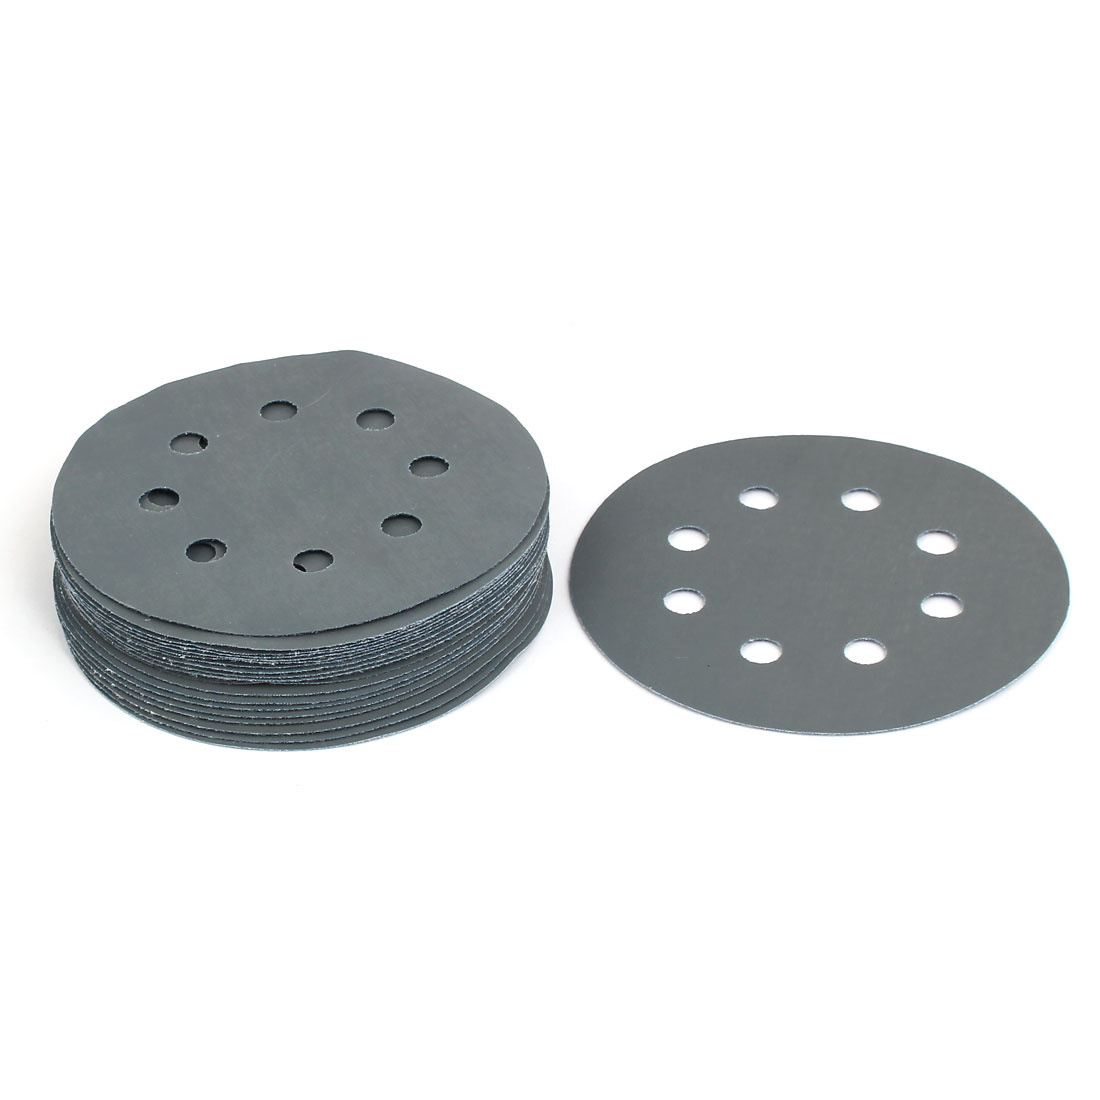 "3000 Grit 8 Hole 5"" Diameter Sandpaper Hook Loop Sanding Disc 20 Pcs"